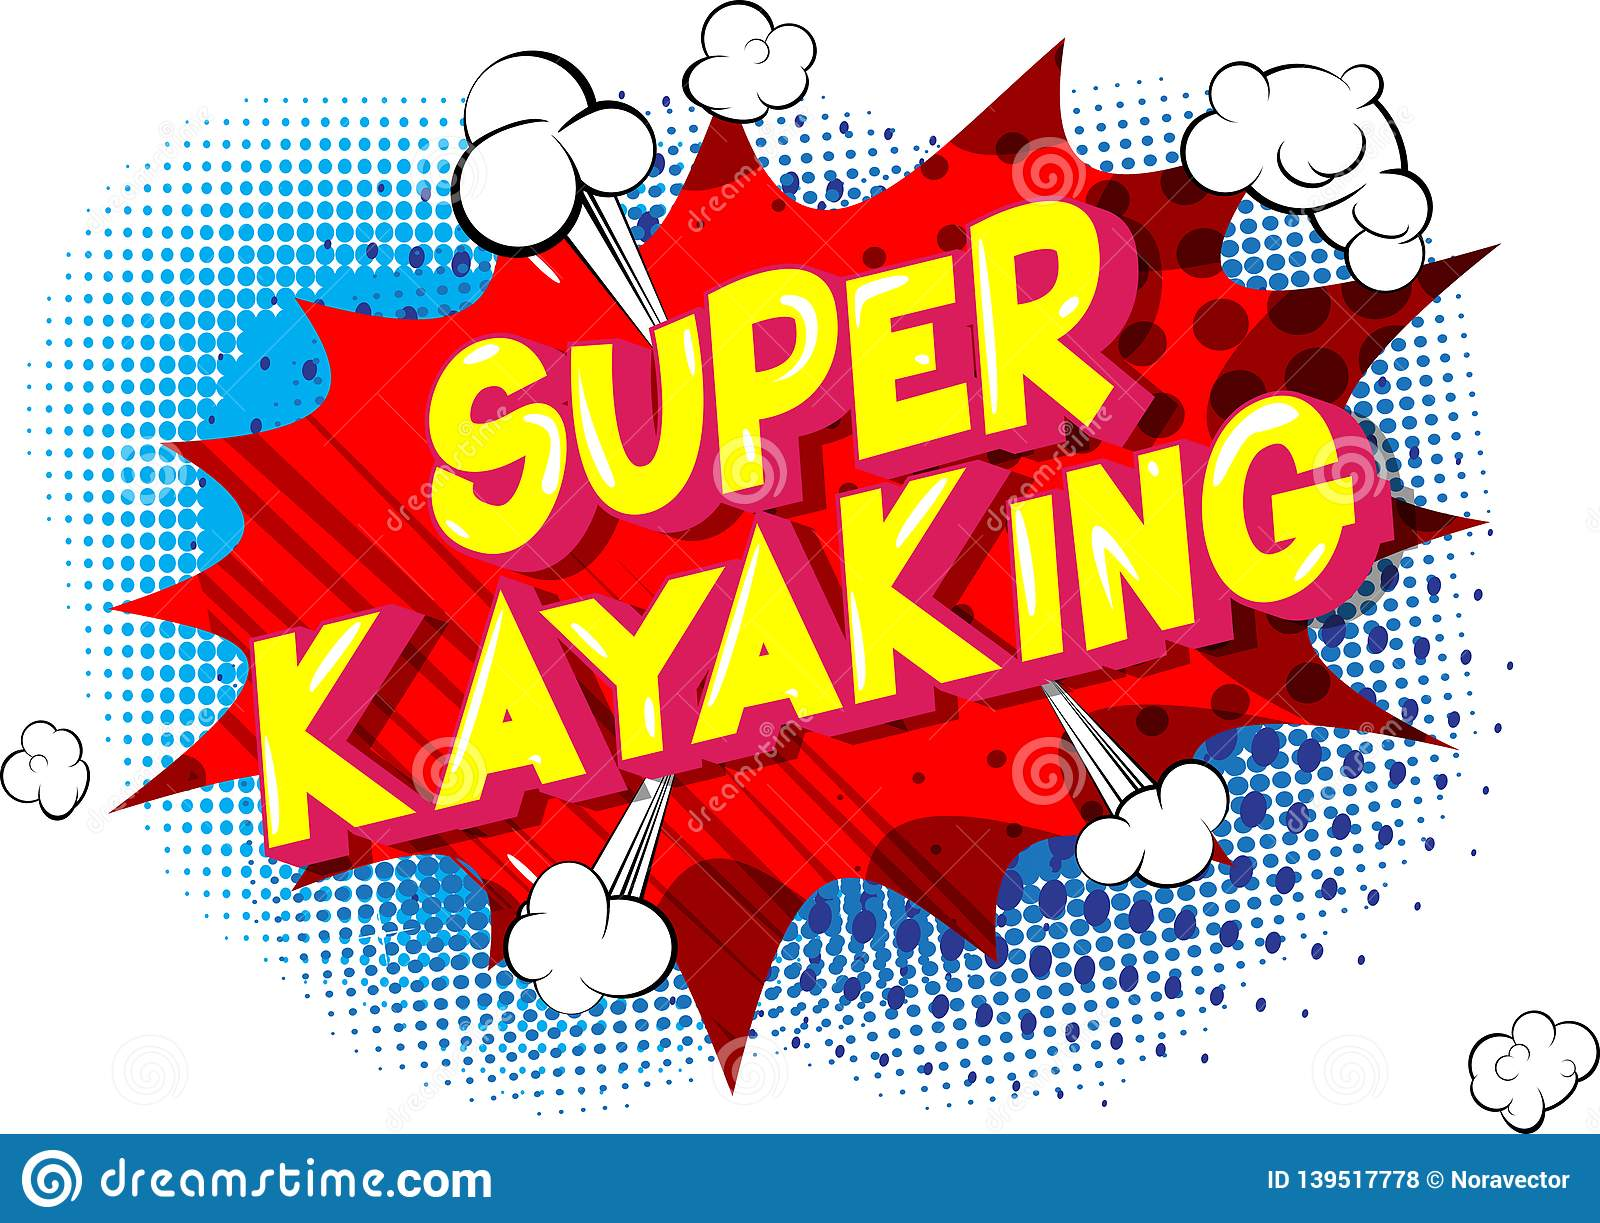 Super Kayaking - Comic book style words.